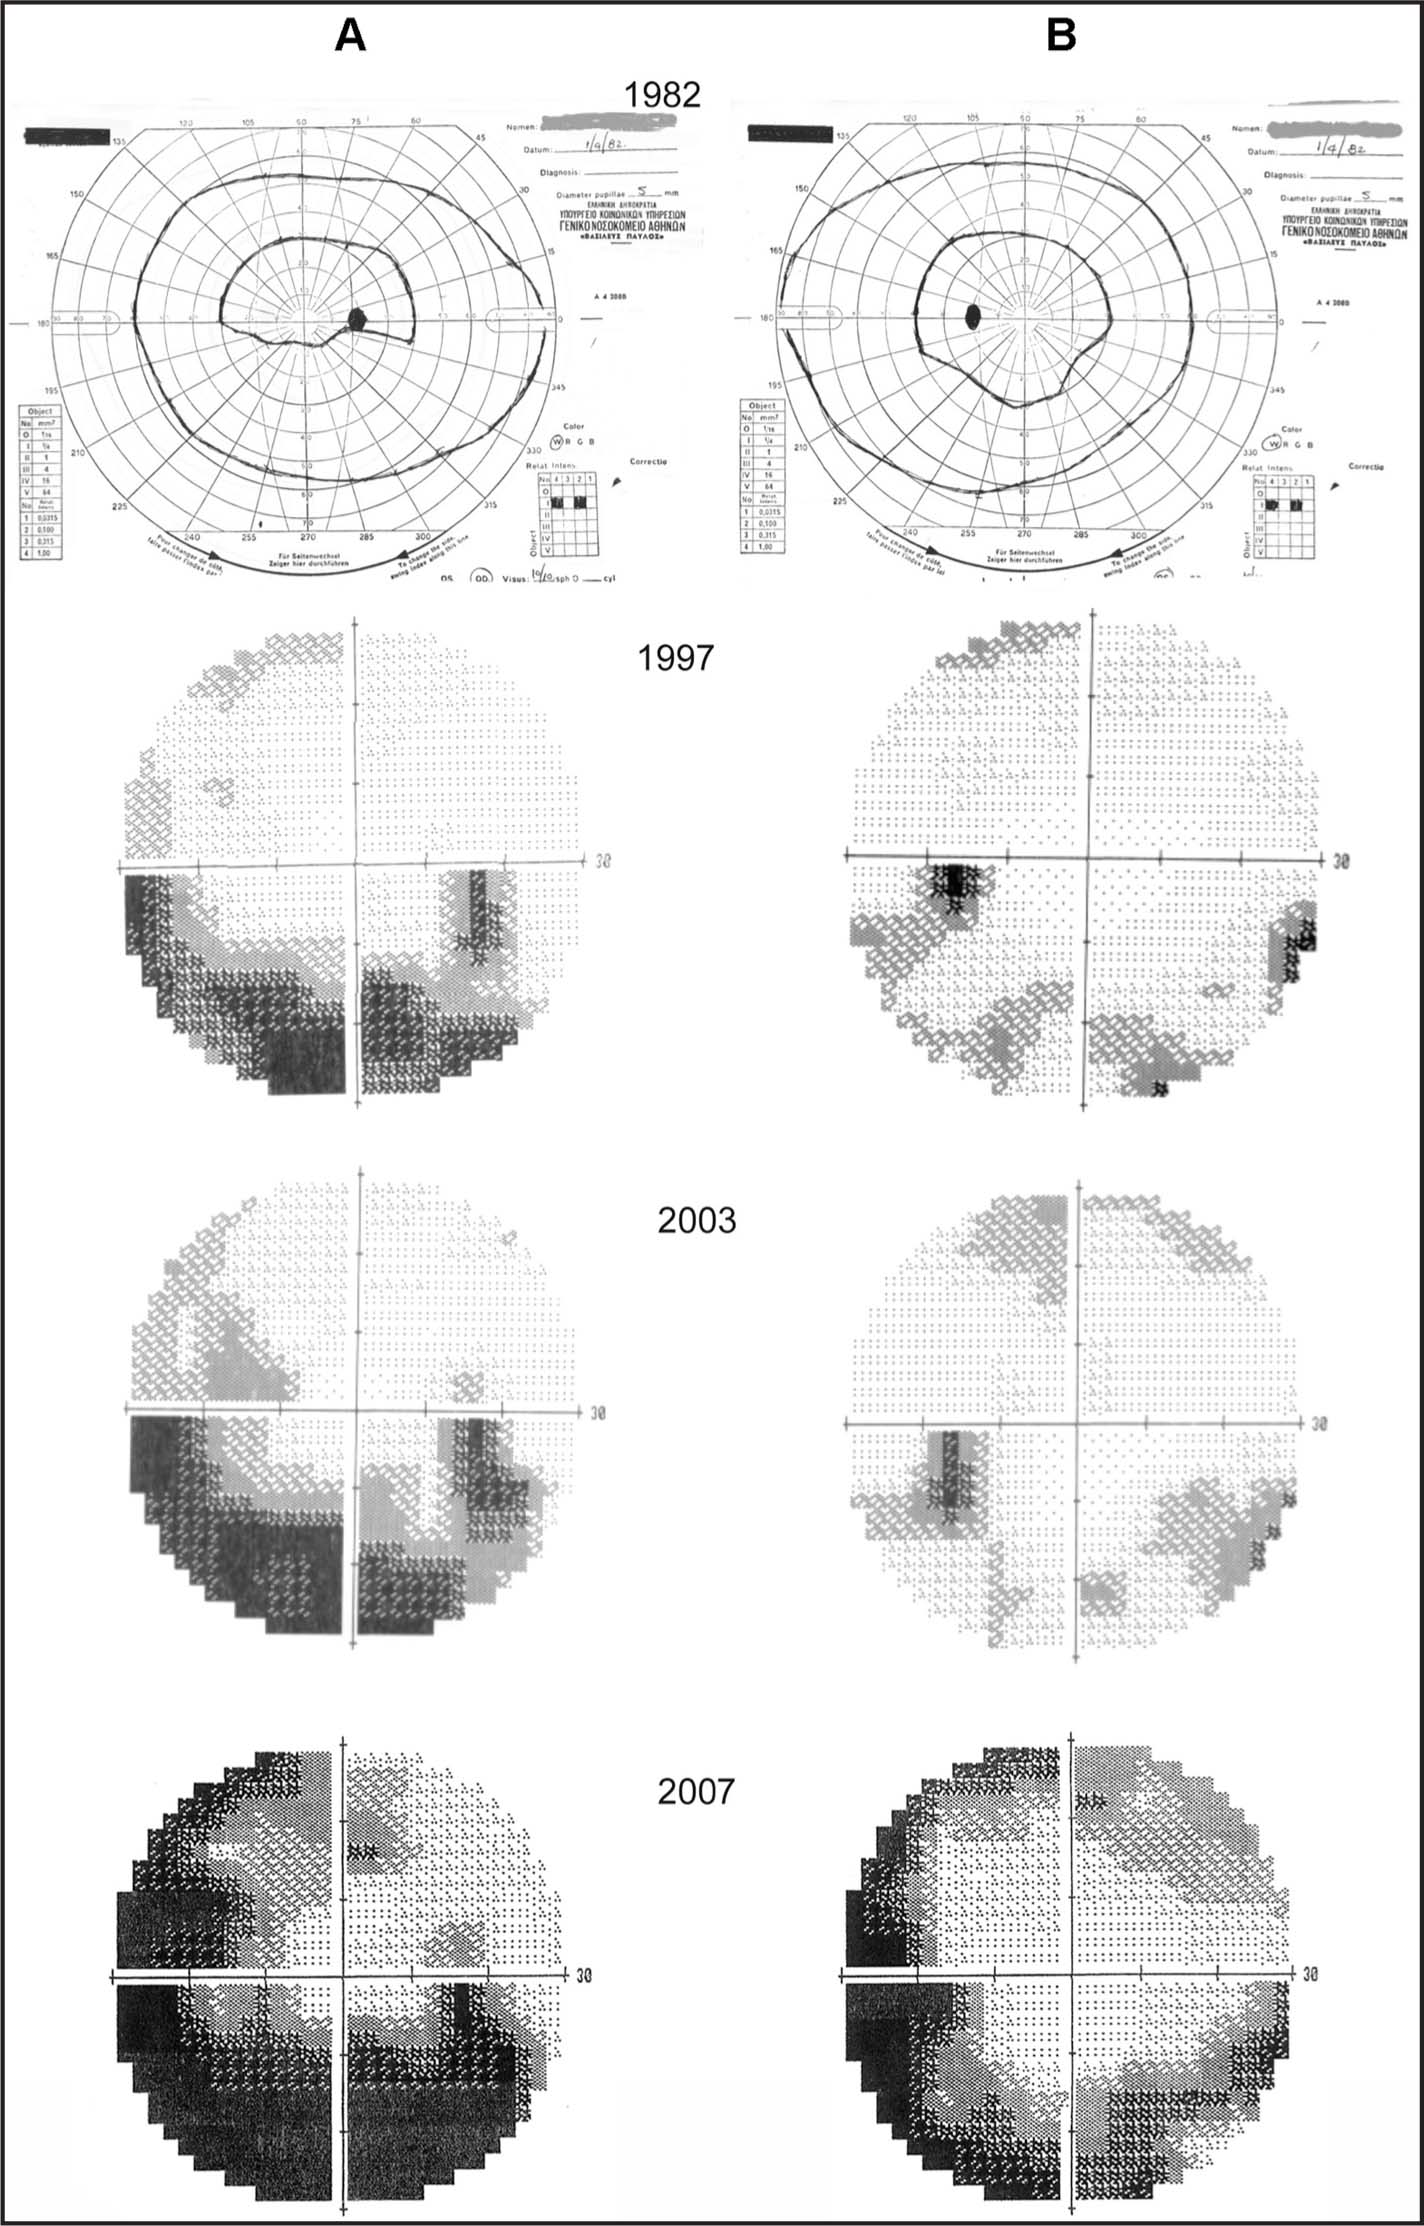 The Gradual Deterioration of Kinetic and Automated Perimetry in Both Eyes During the Follow-Up Period Is Evident. The Visual Field Changes Are More Prominent in the Right Eye Due to the Extension of the Drusen Beyond the Optic Disc Margin. (A) Right Eye. (B) Left Eye.